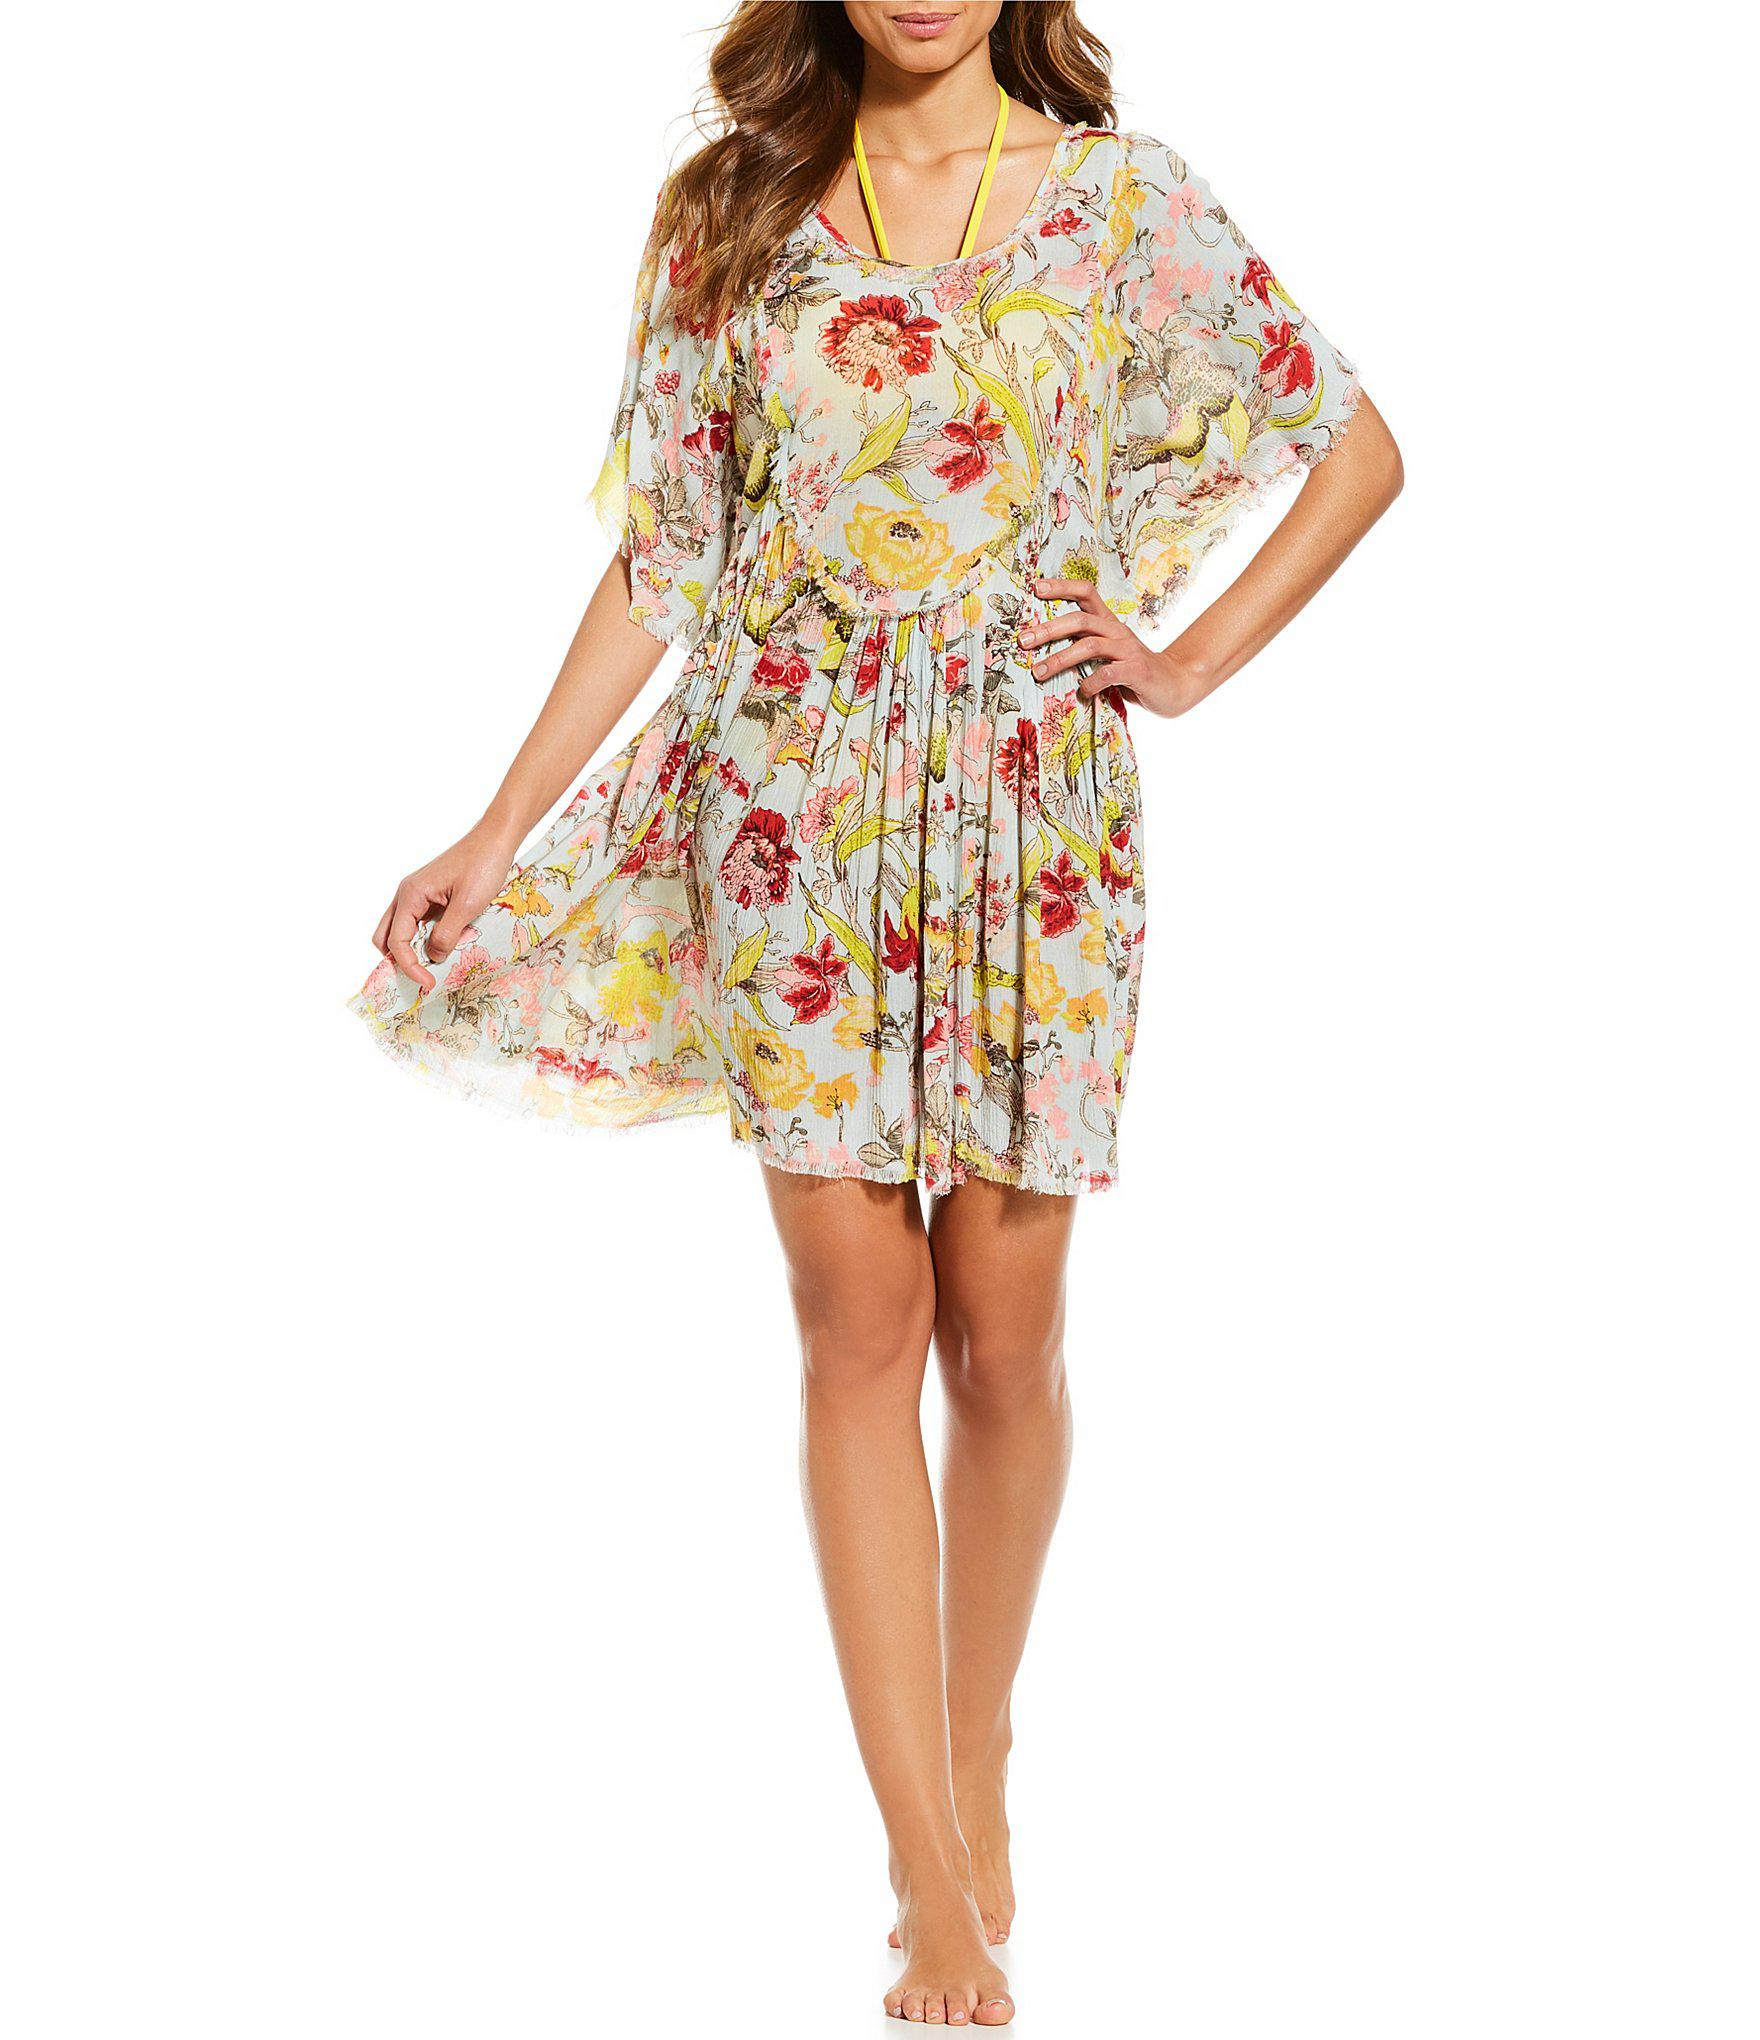 047fff7863 Gianni Bini Swing Dress Cover-up - Lyst